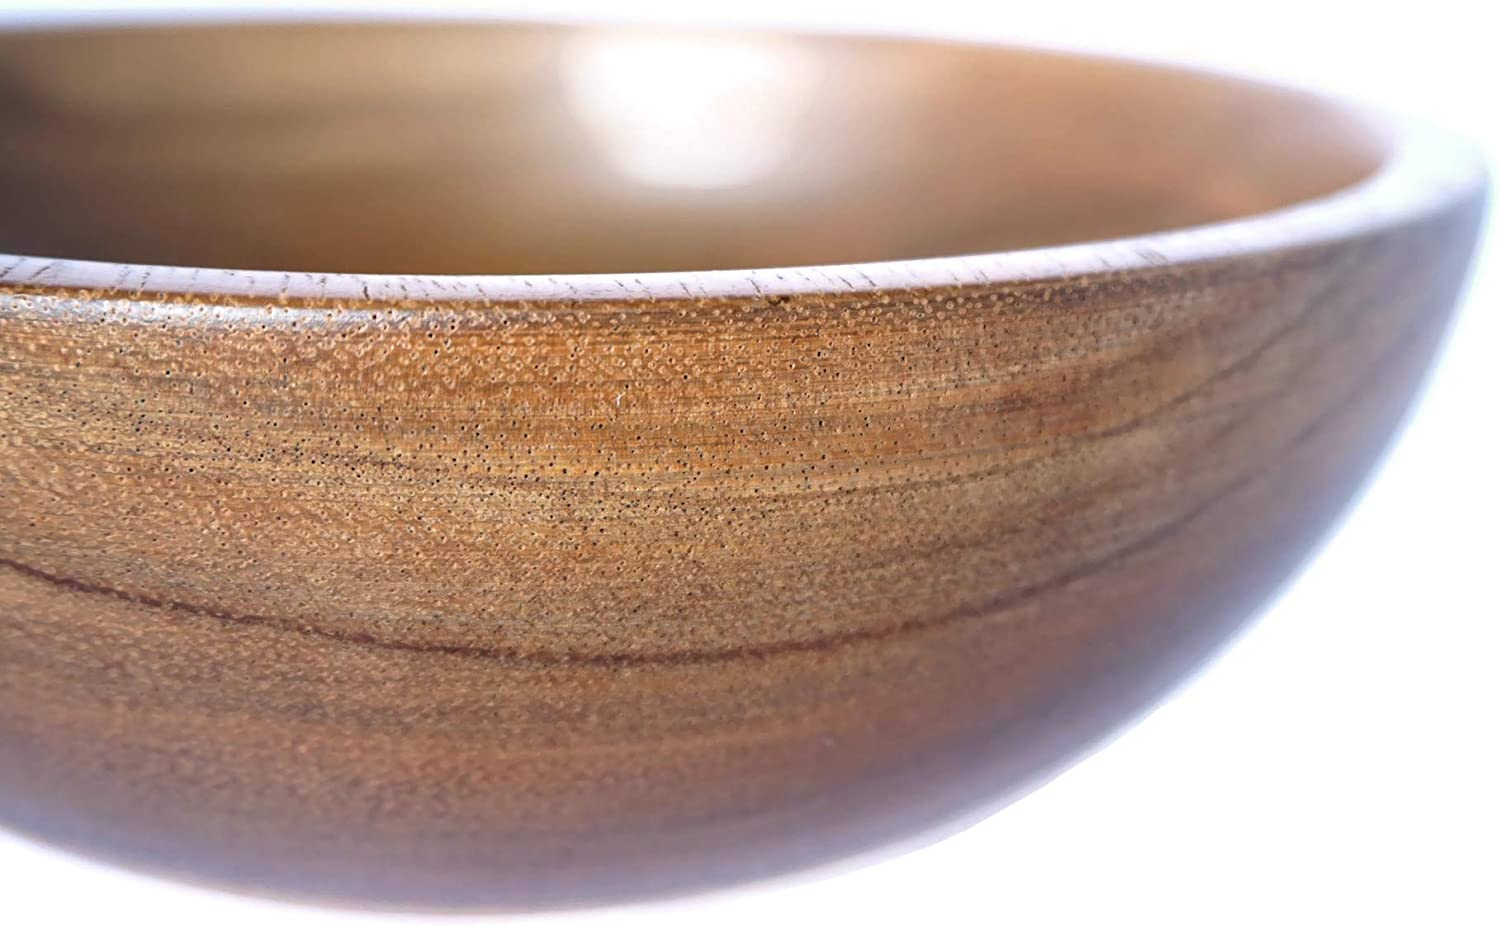 Single Bowl 25 cm x 10cm 10 Diametter x 4 Height Medium Fruits and Vegetables PLWOOD Acacia Wooden Salad Bowl Single Serving Perfect for Serving Salad